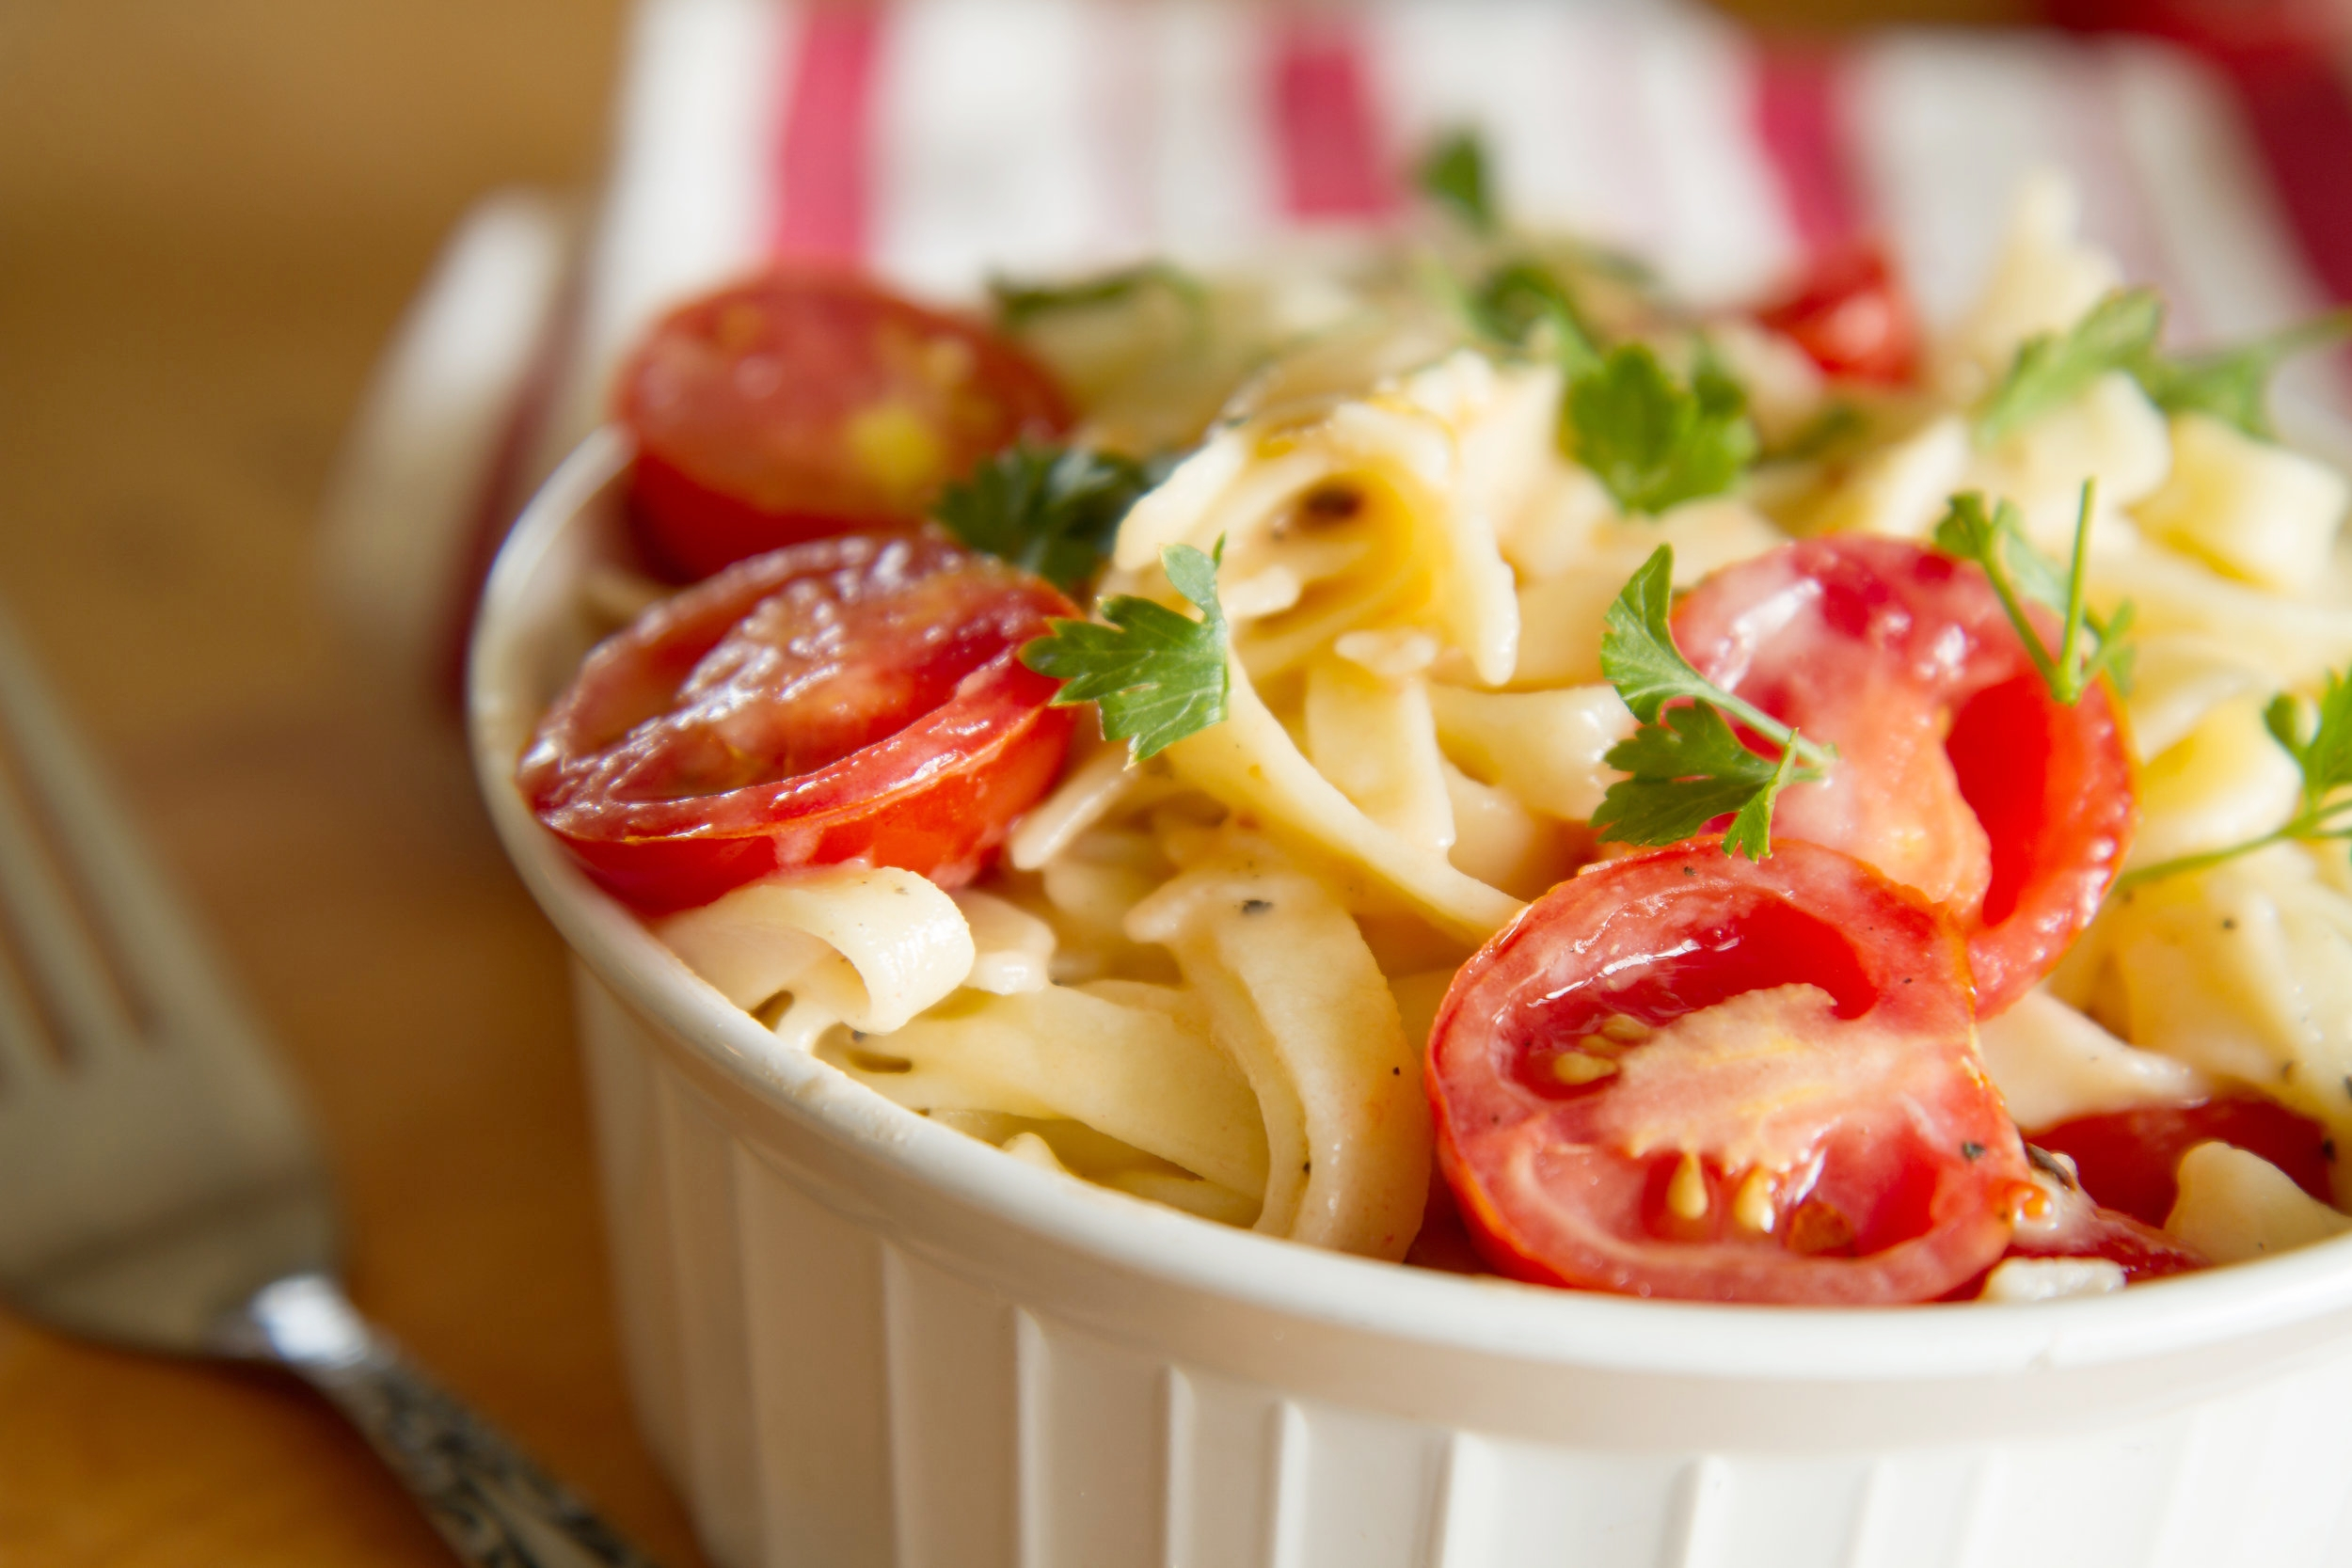 Egg linguine with summer tomatoes and butter sauce.